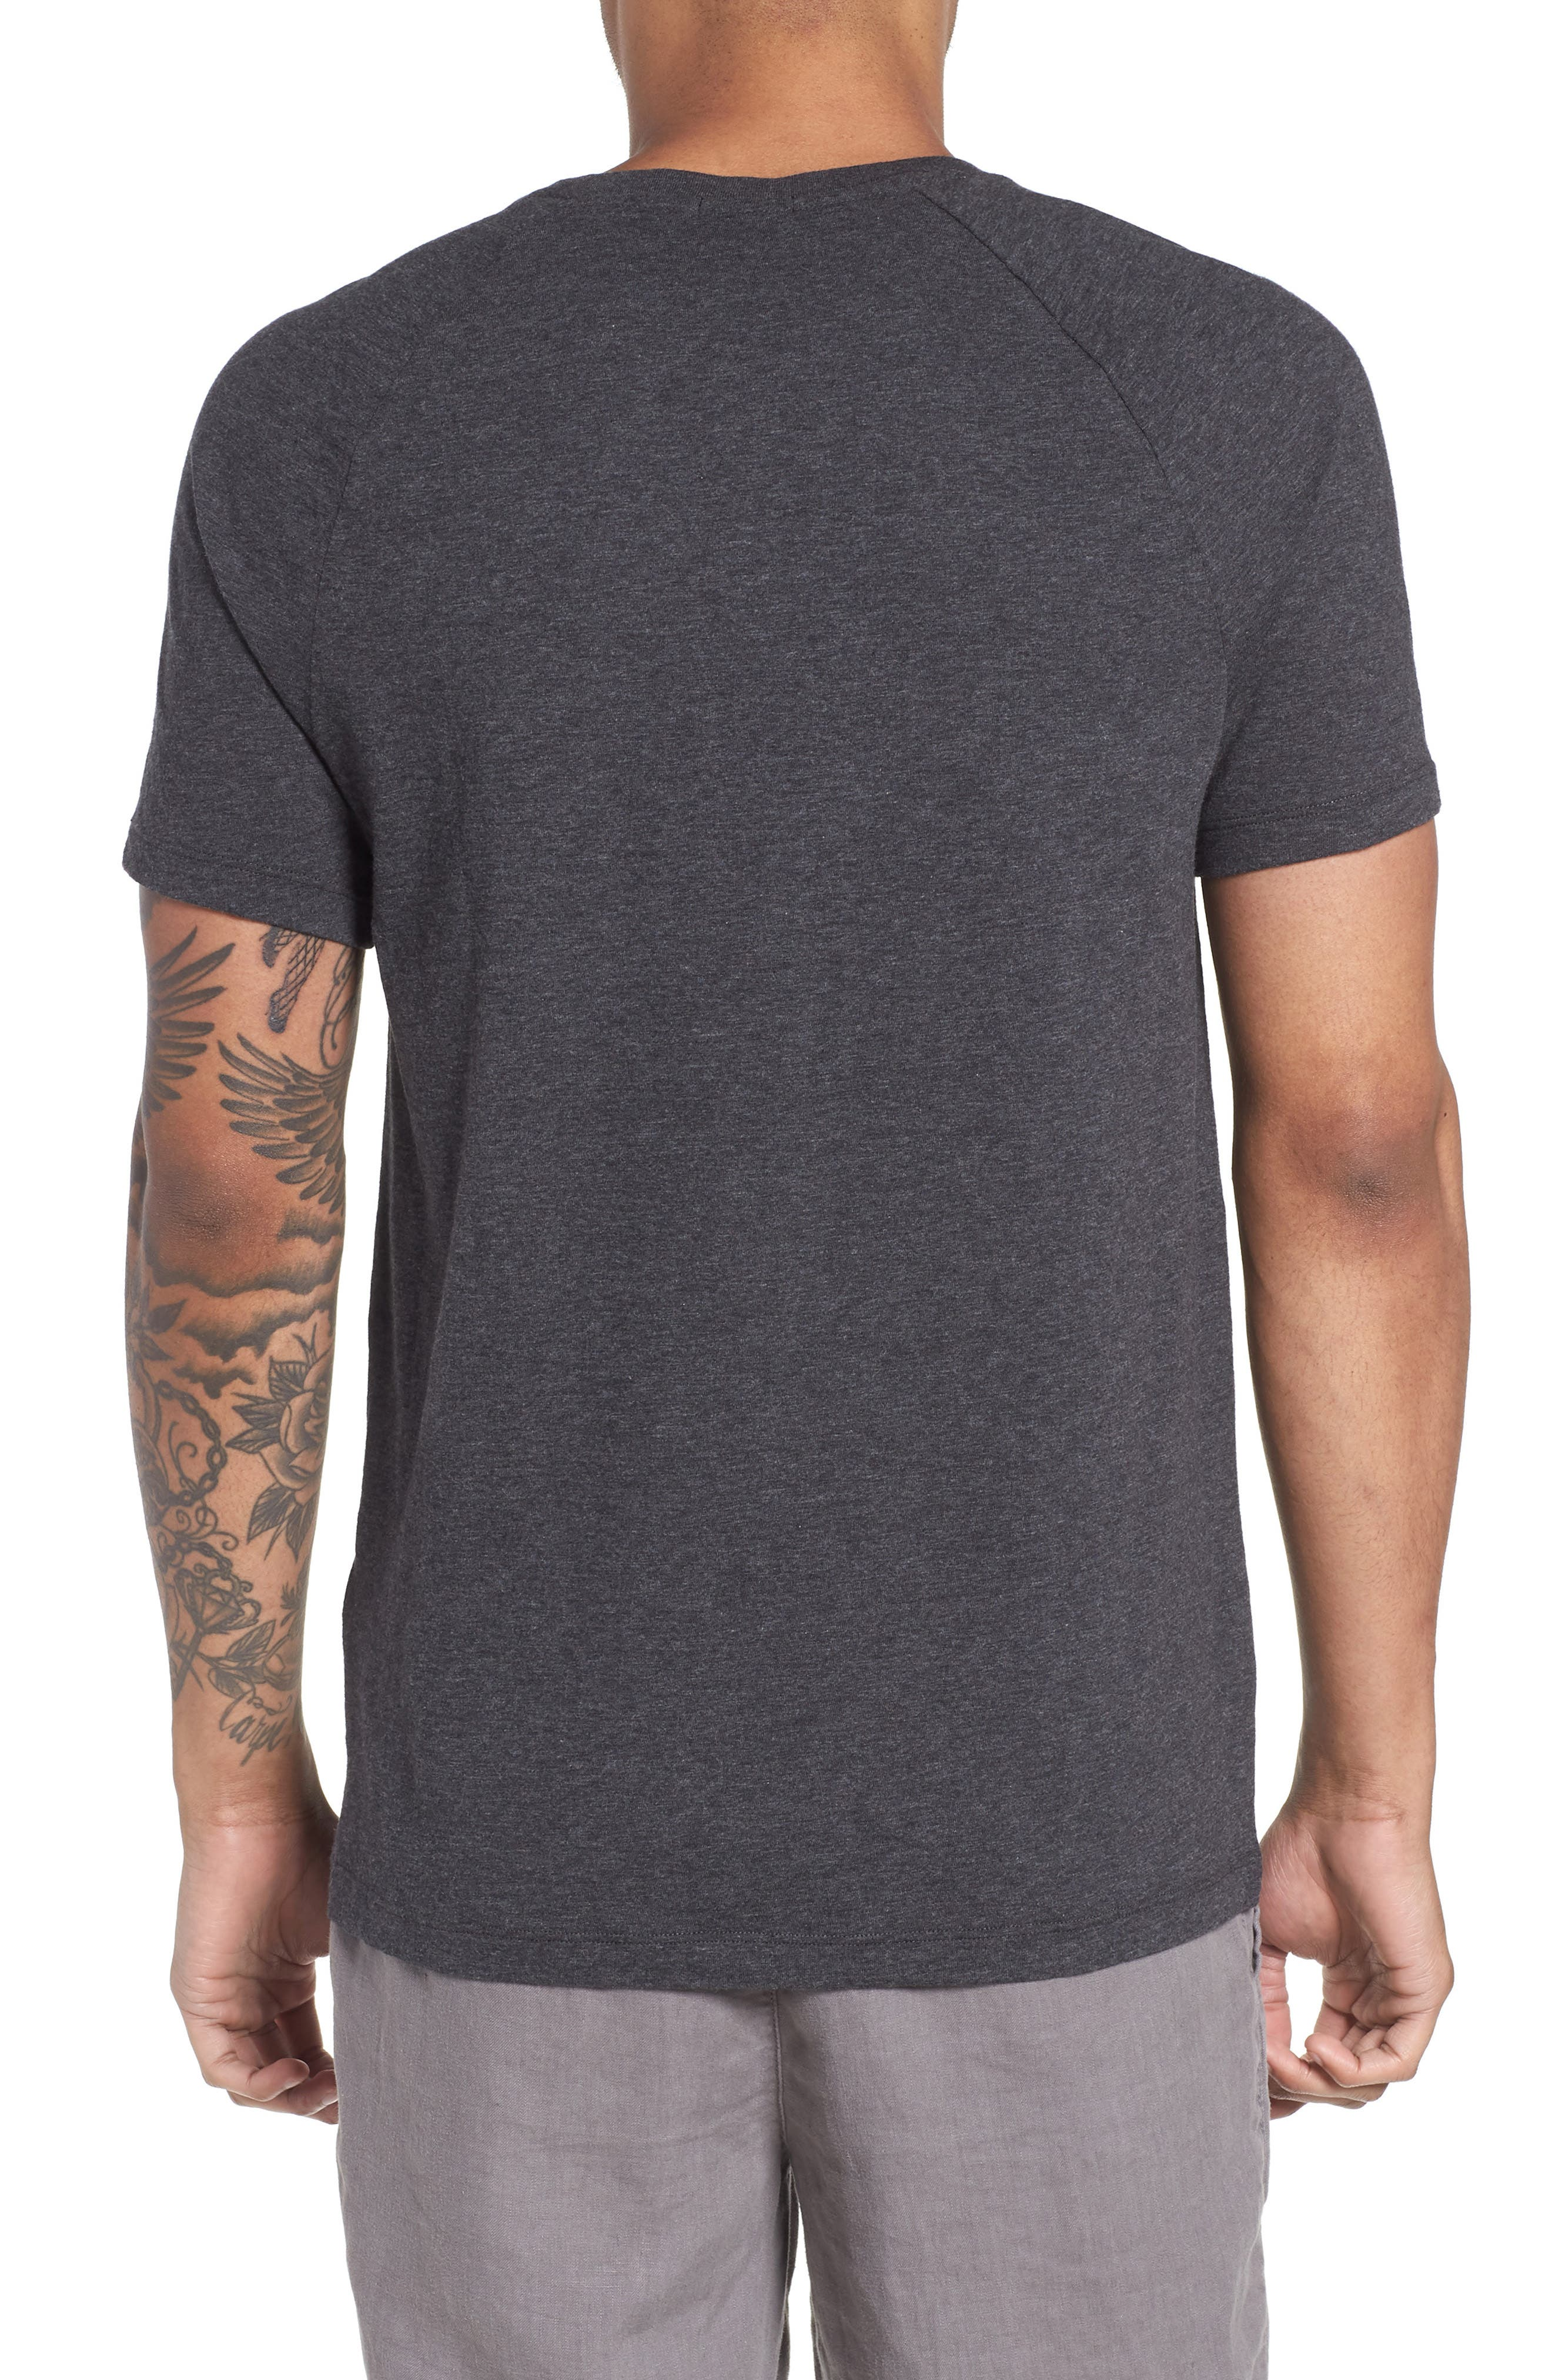 Tessler Slim Fit Pocket T-Shirt,                             Alternate thumbnail 2, color,                             001